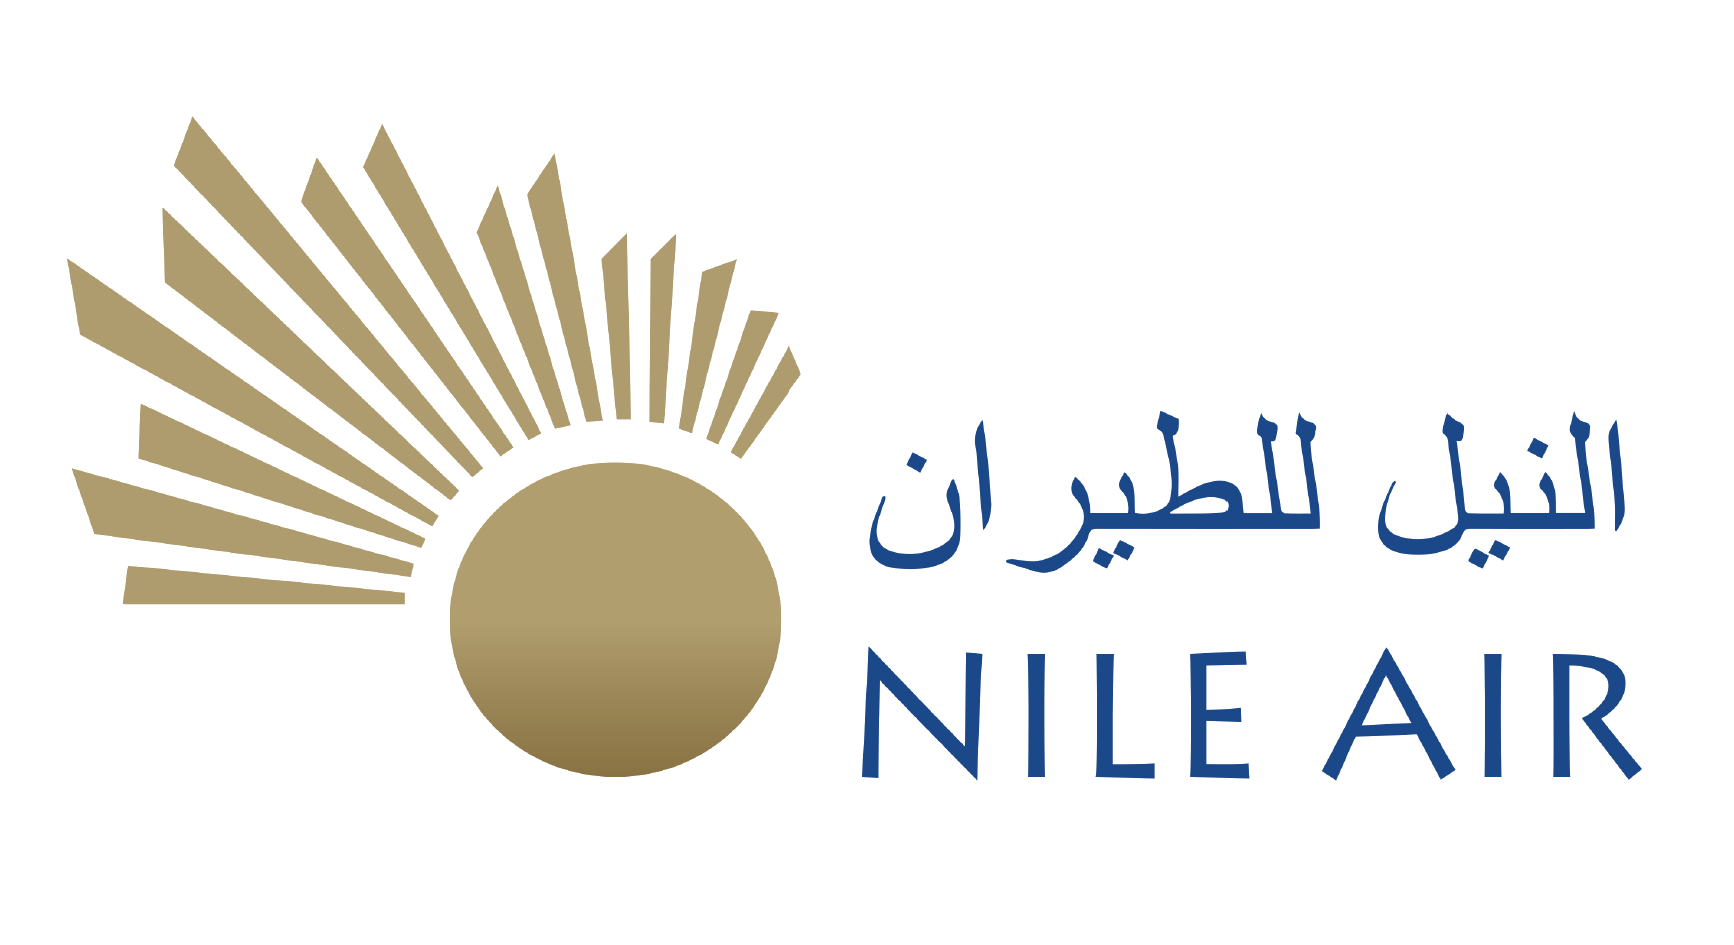 Air png image. File nile wikimedia commons